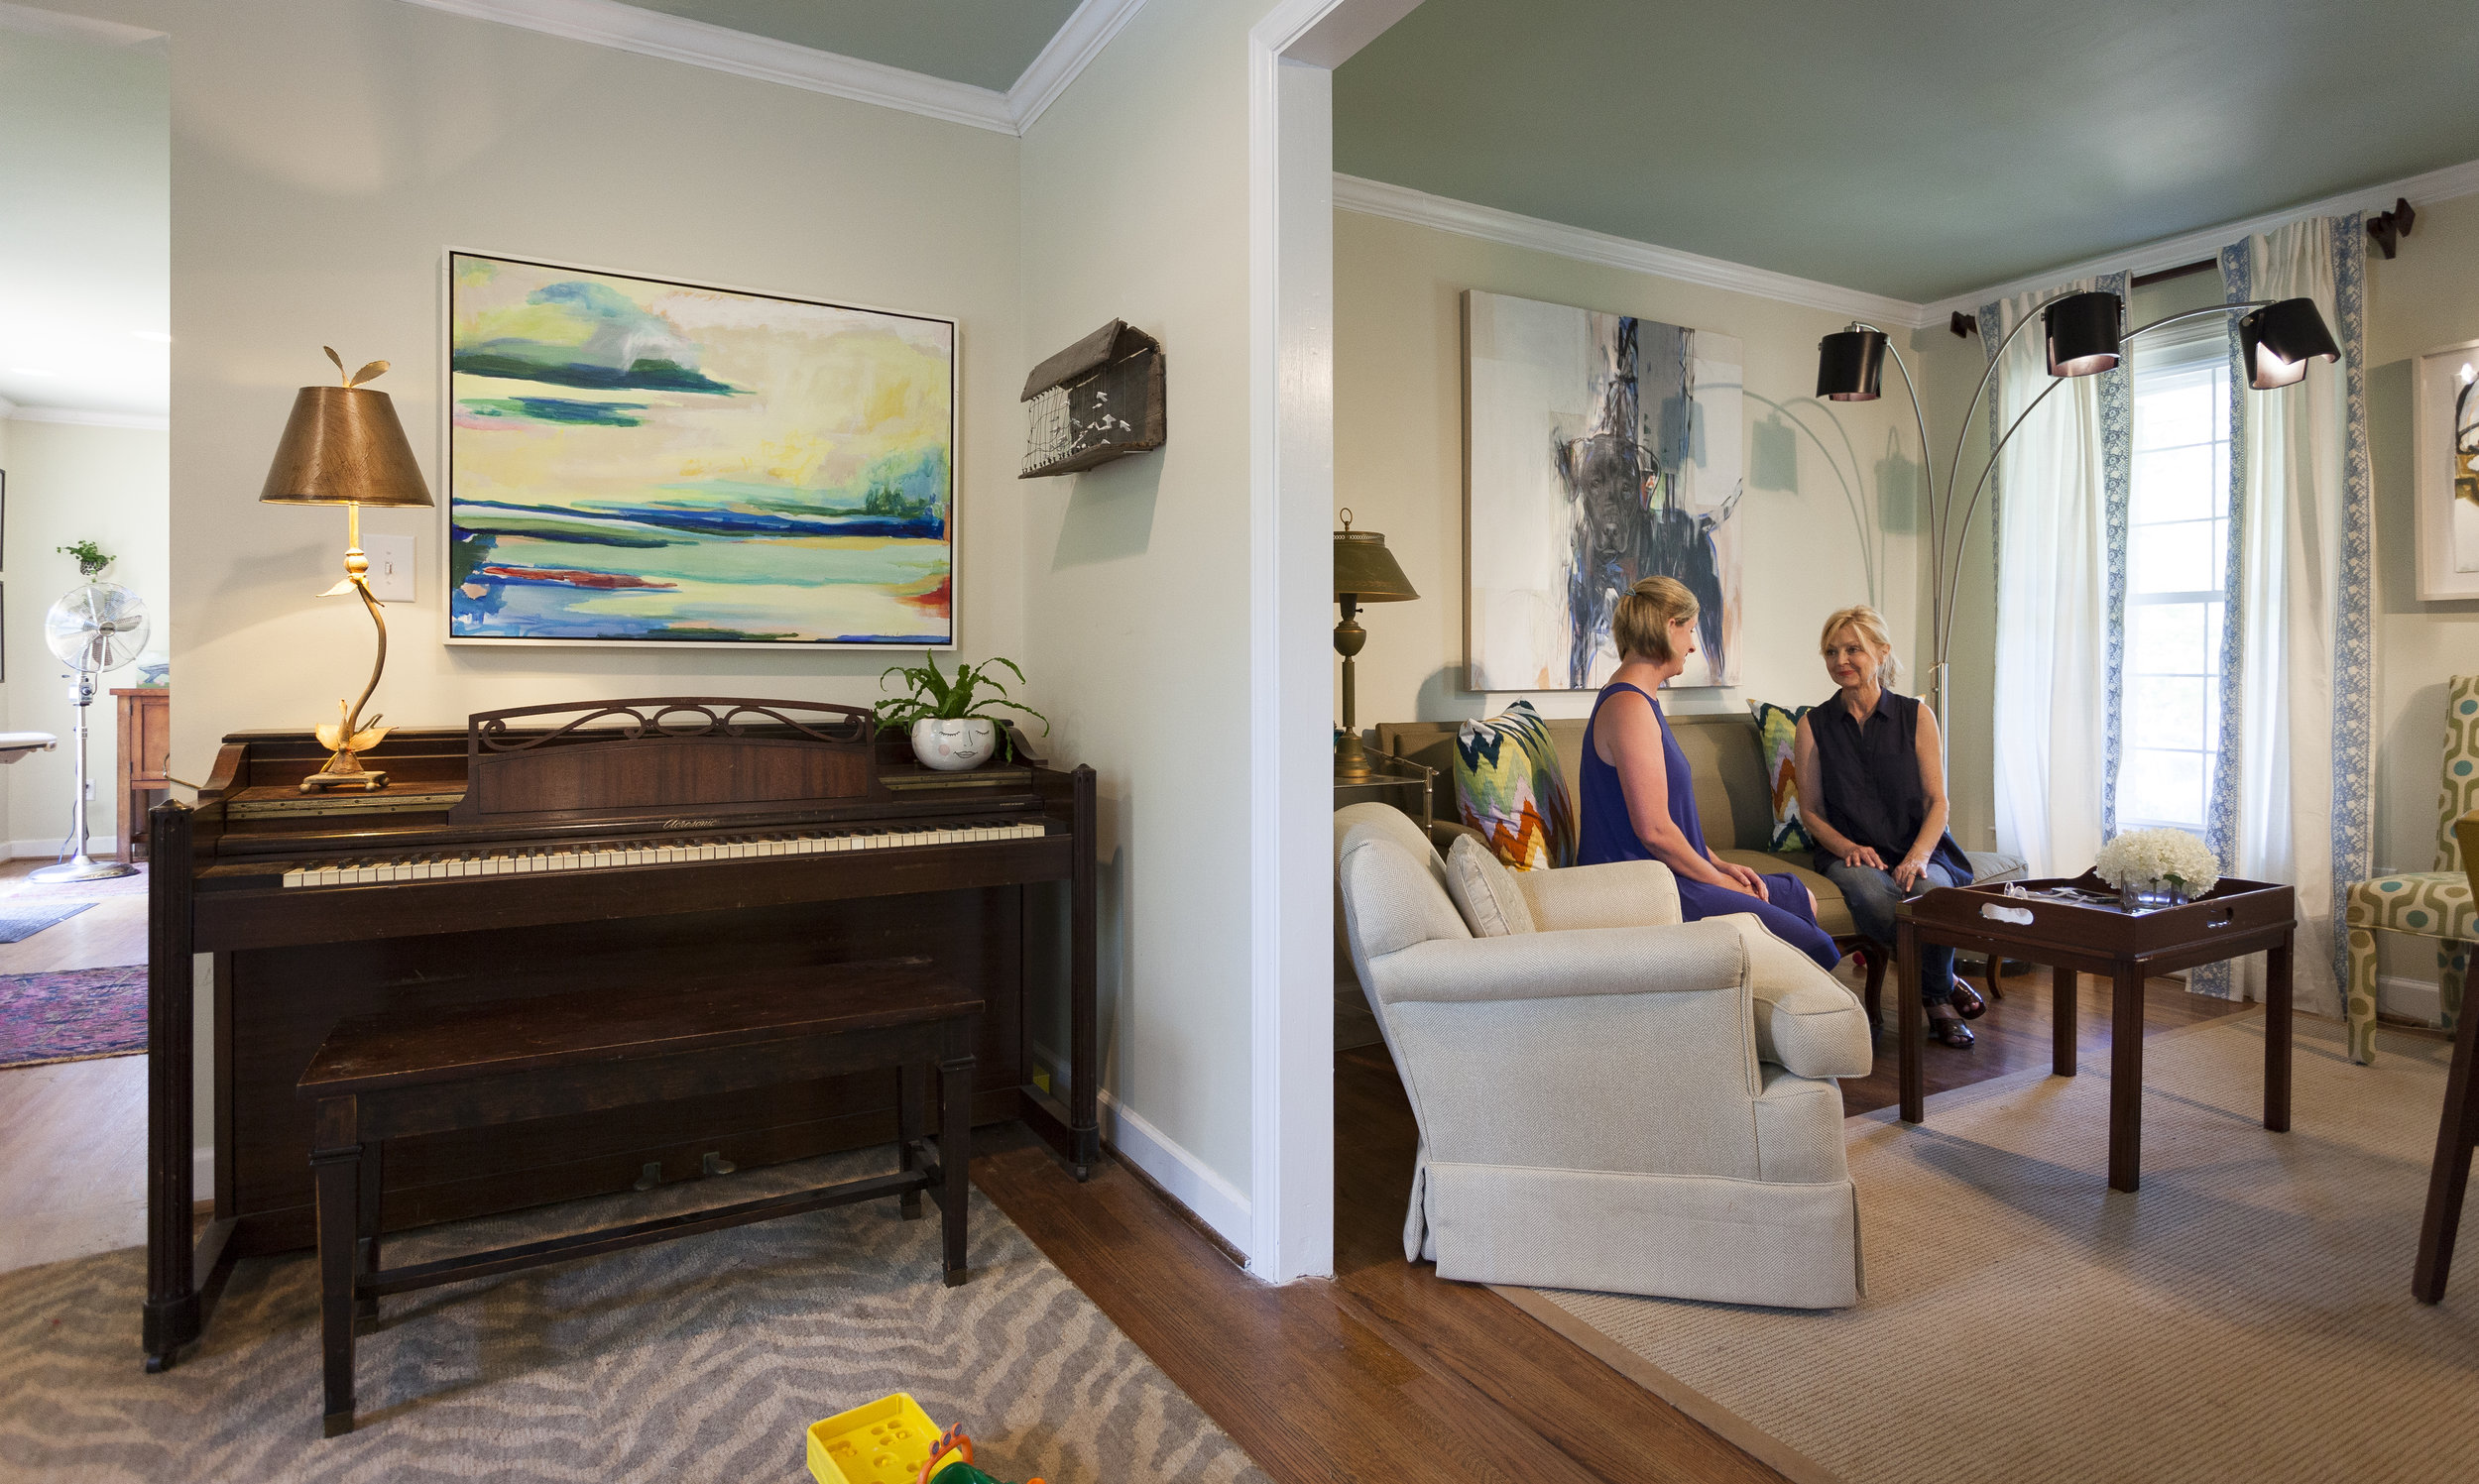 a  Kiah Bellows  landscape hangs above the piano and  Heather LaHaise's  pup is over the couch.